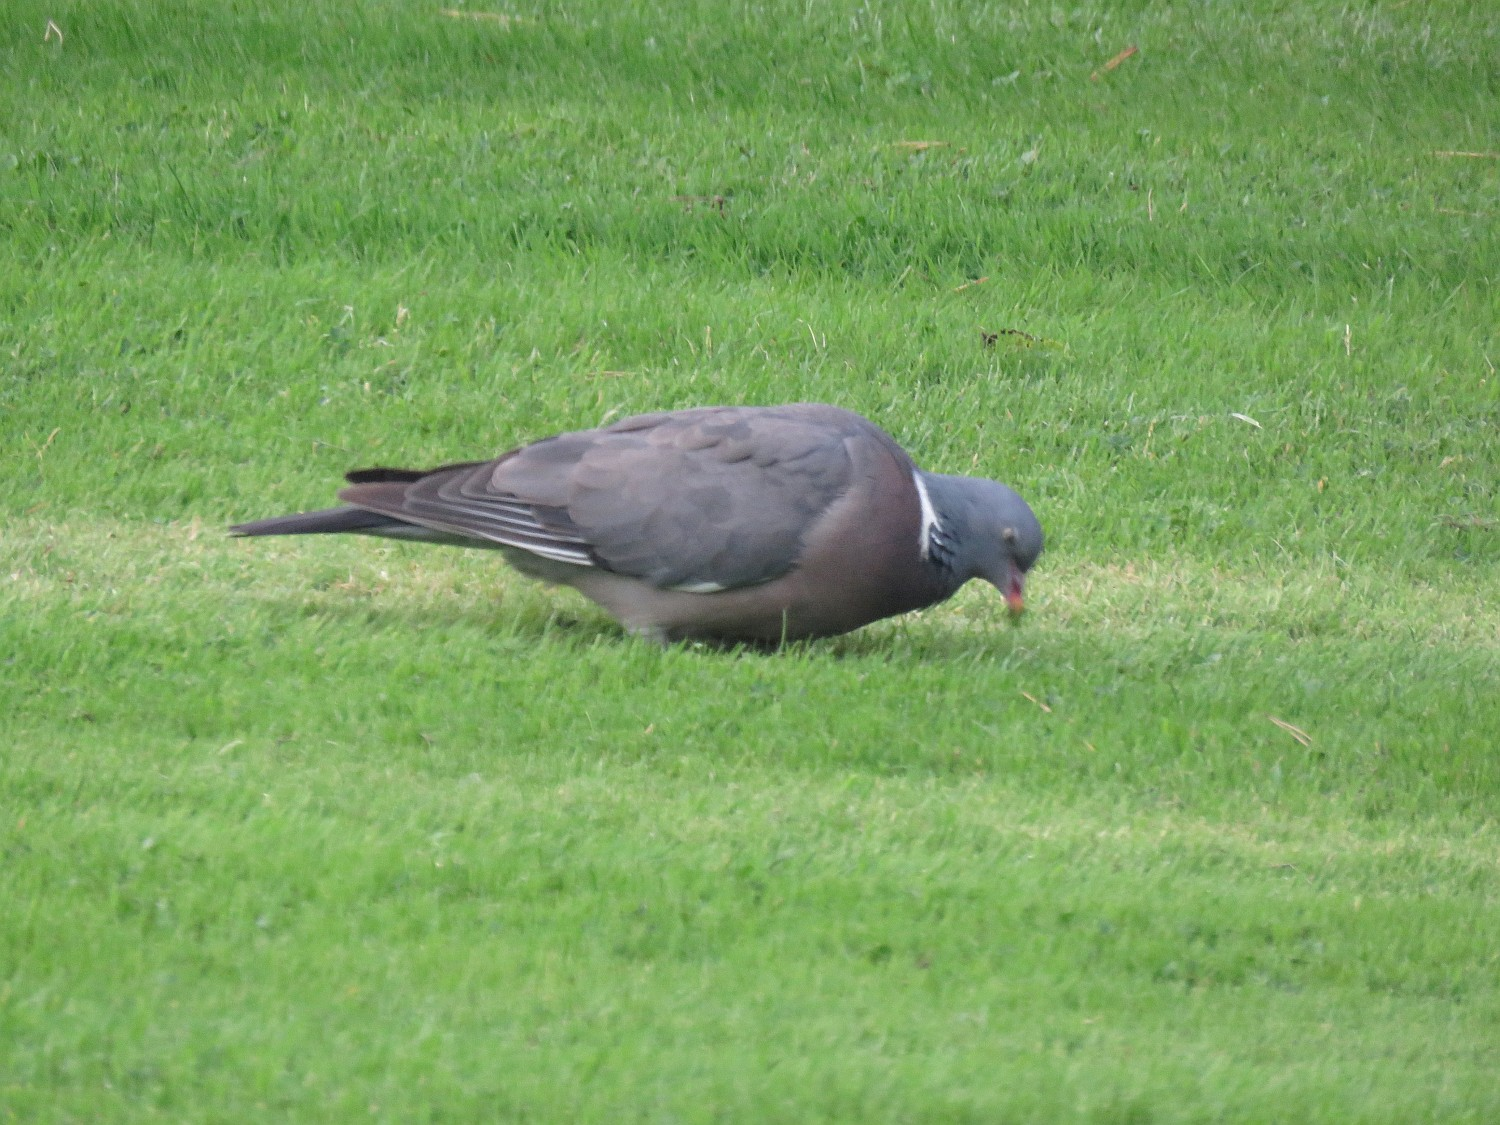 Our first bird - right in the front yard.  A wood pigeon - the head is a lovely teal green.